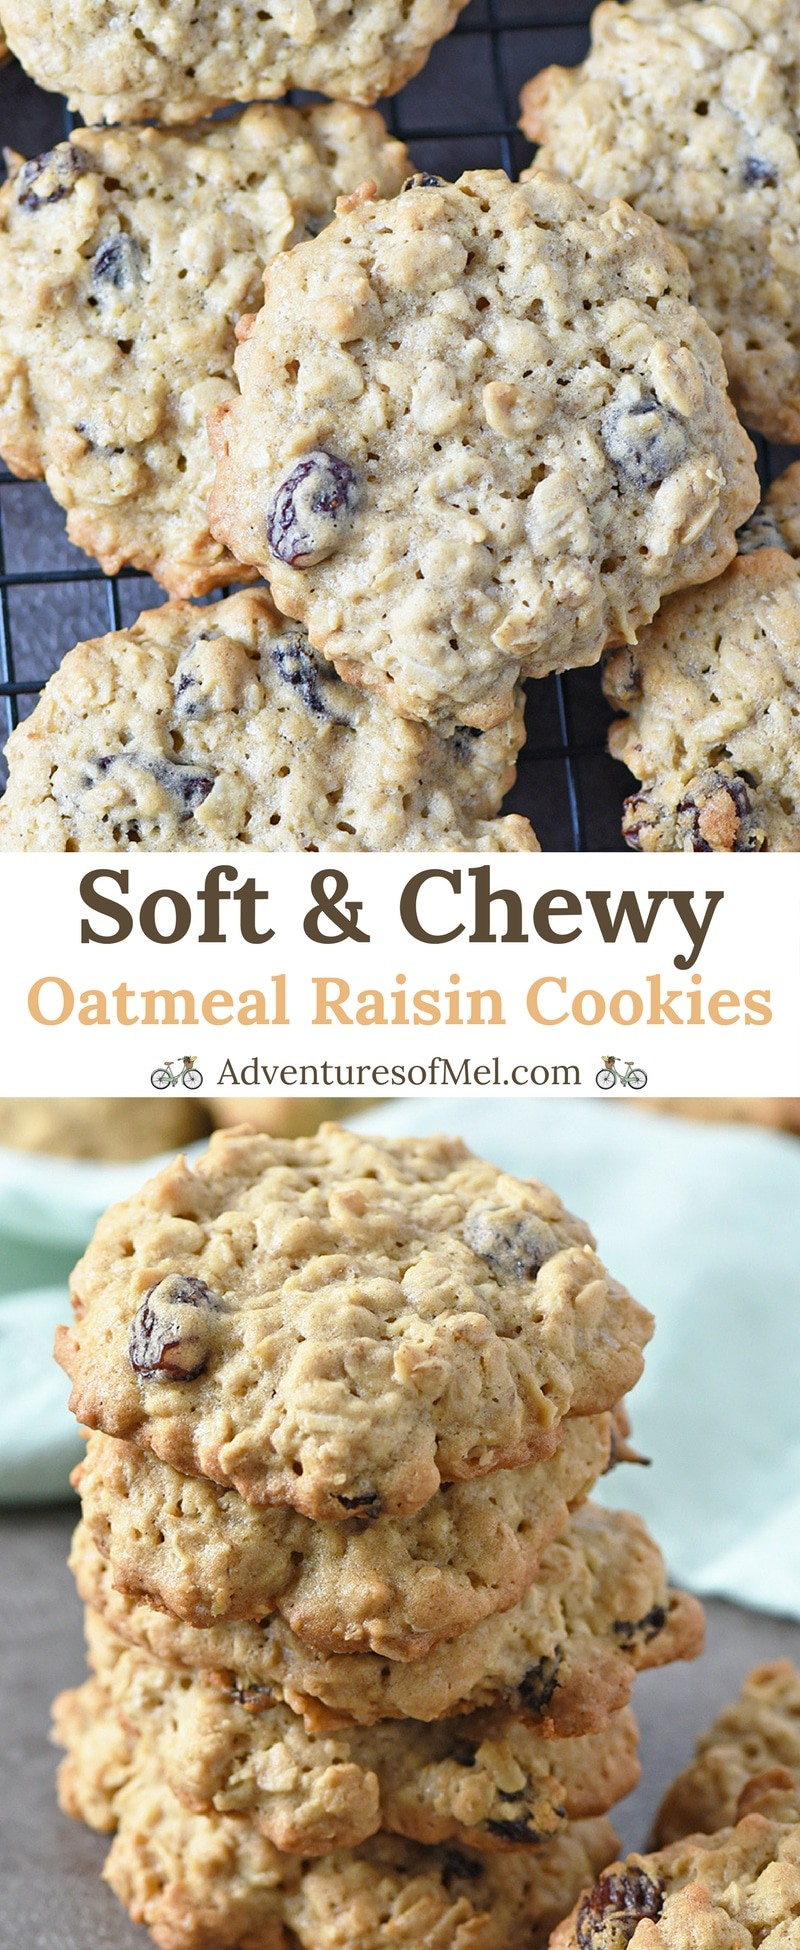 Oatmeal Raisin Cookies, made with brown sugar, cinnamon, and oatmeal, have a crispy outer edge and a soft, chewy middle. Delicious cookie recipe!